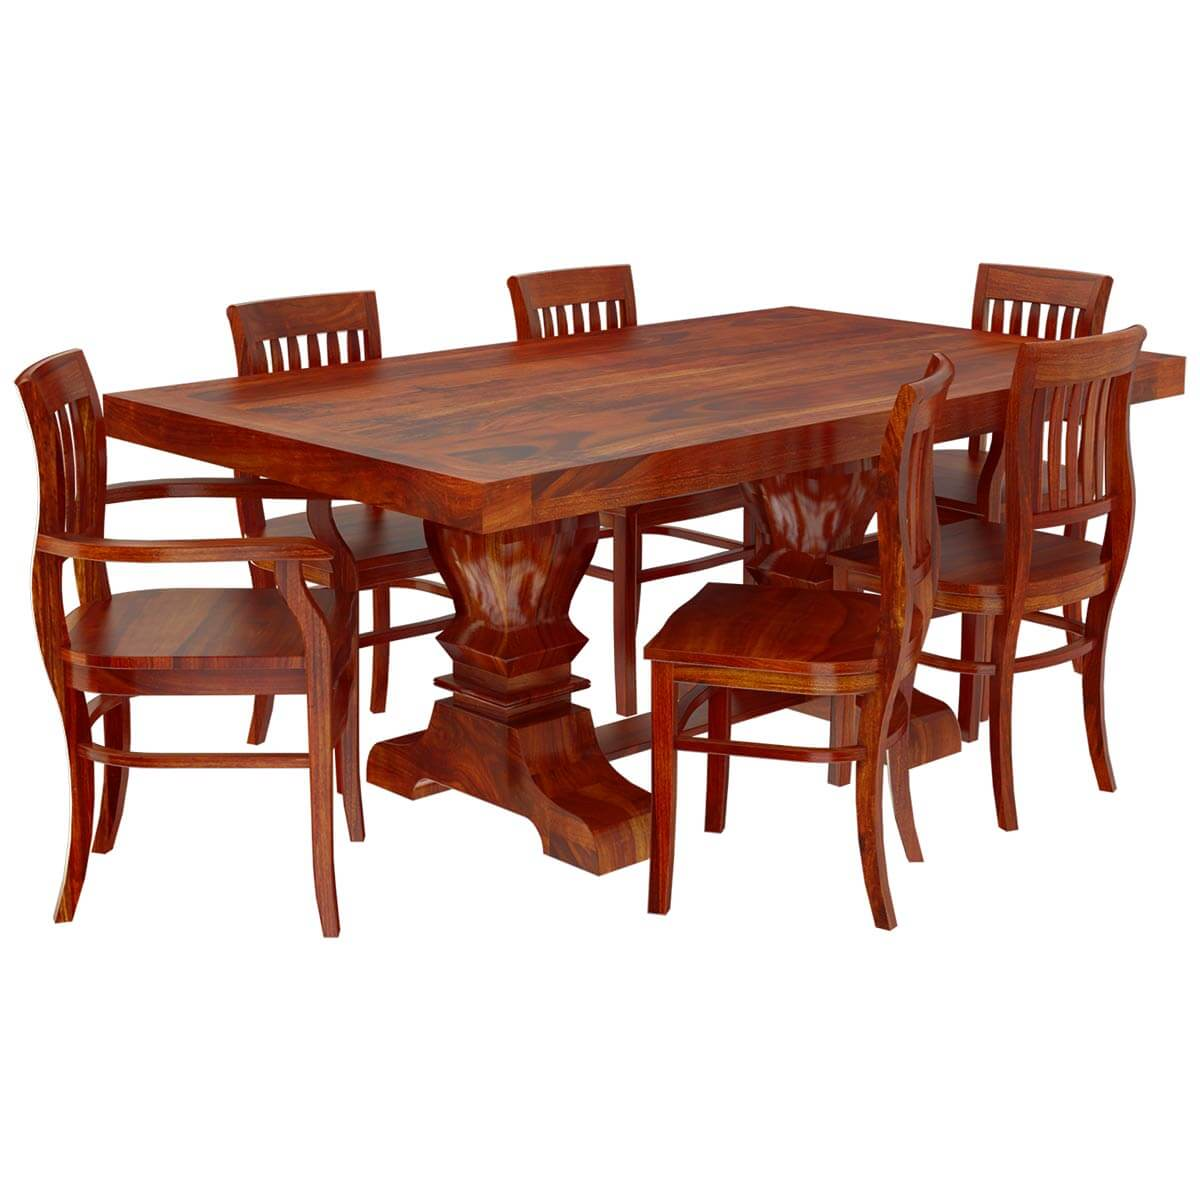 siena solid wood trestle pedestal dining table barrel back chair set. Black Bedroom Furniture Sets. Home Design Ideas